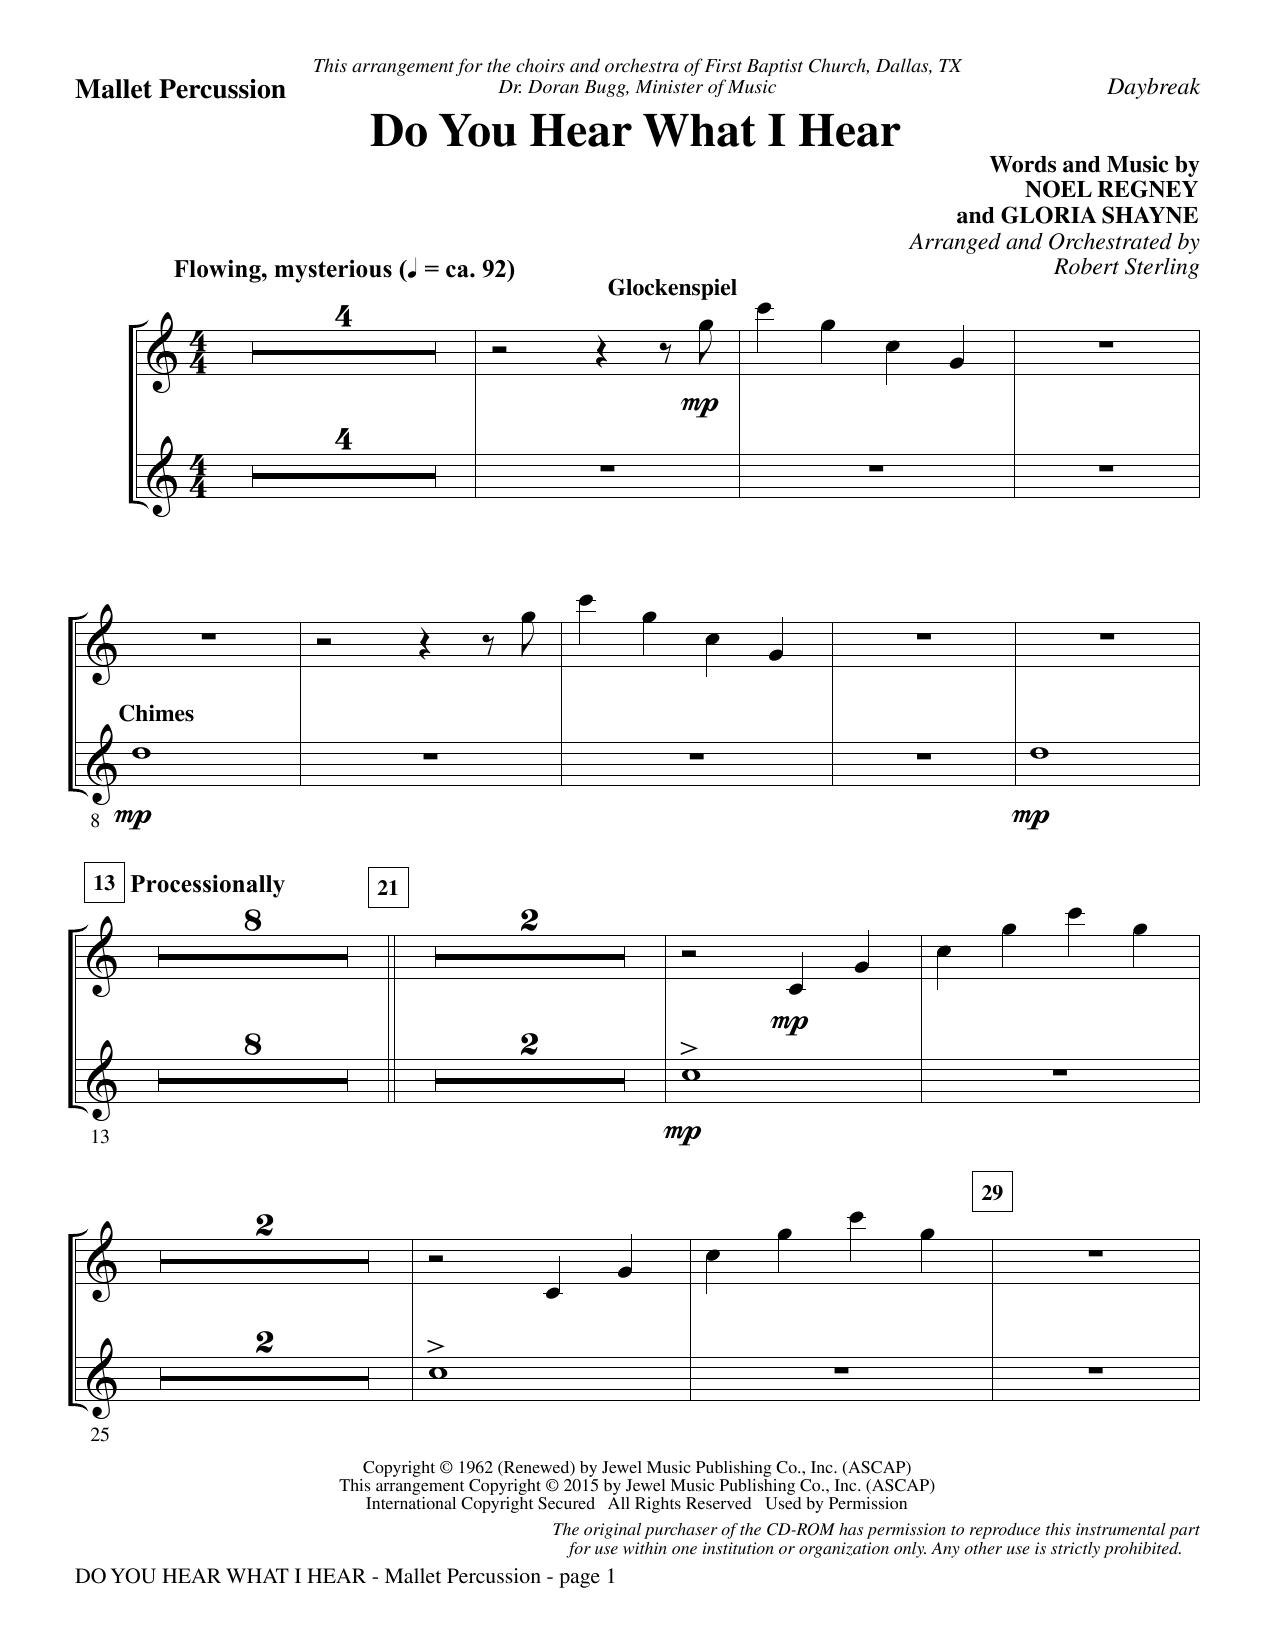 Do You Hear What I Hear - Mallet Percussion Sheet Music